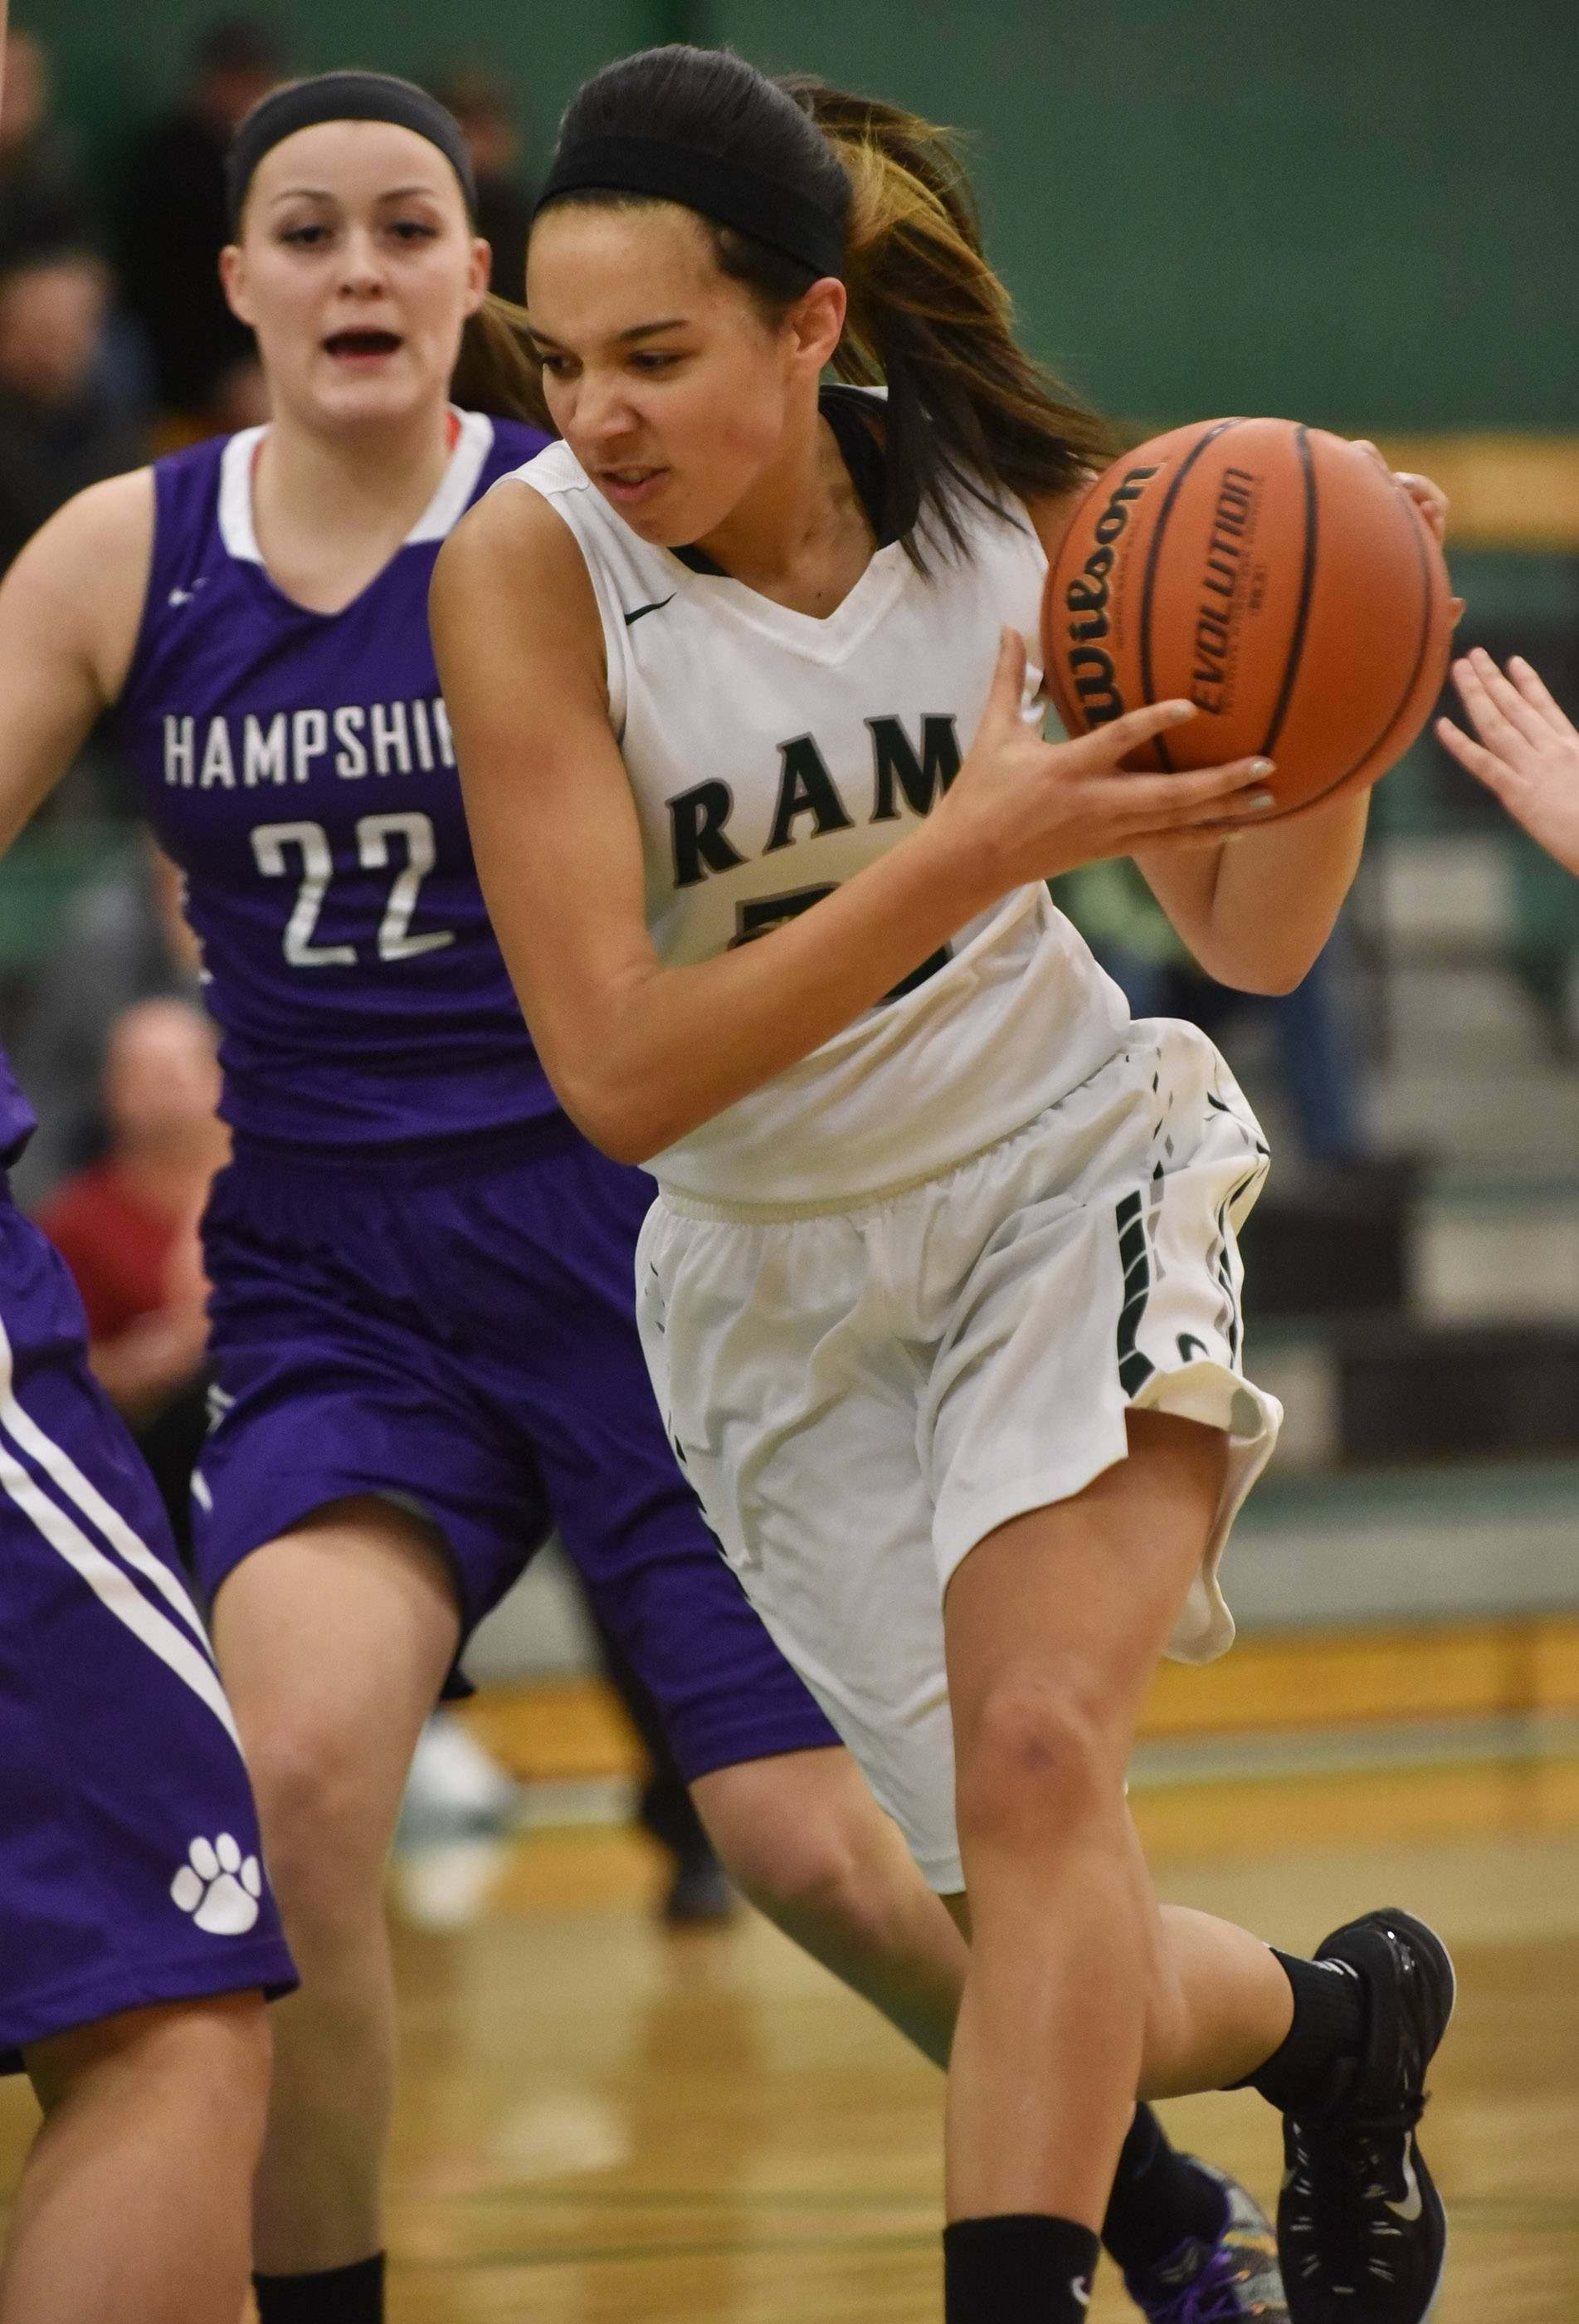 Grayslake Central's Ania Barnes drives around Hampshire's Emma Benoit Wednesday in Grayslake.